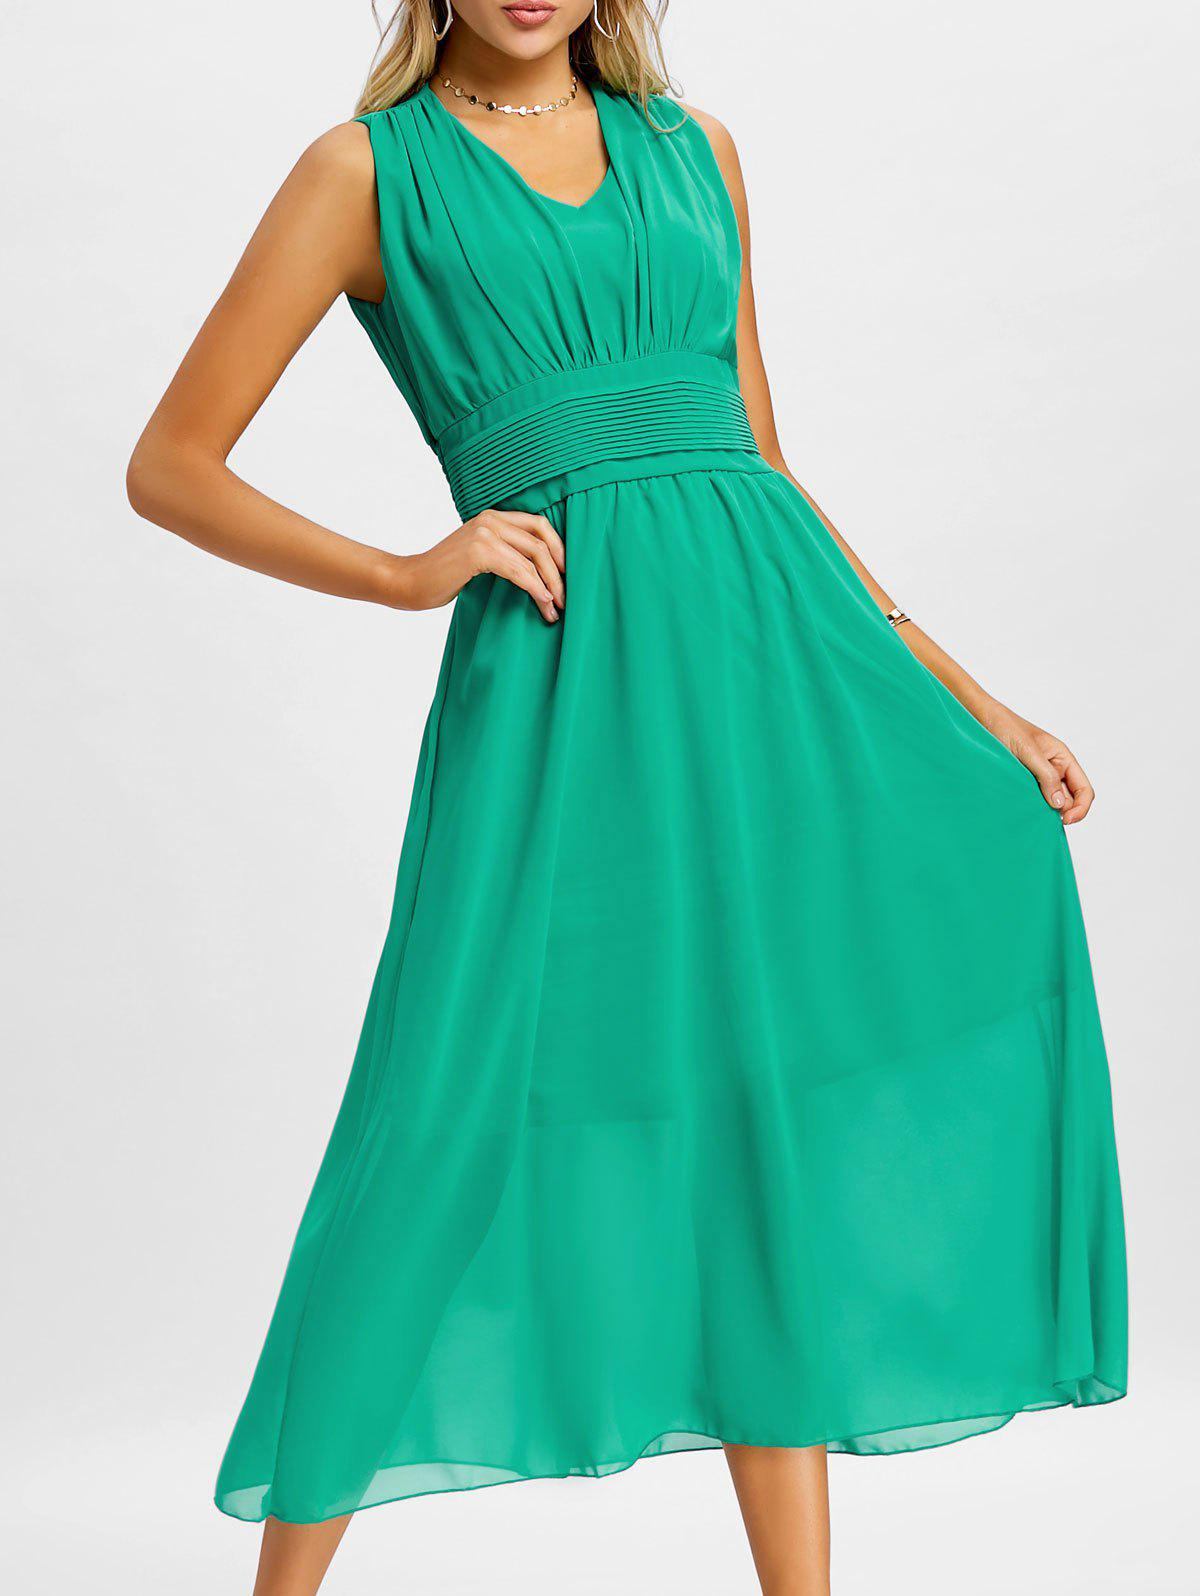 Empire Waist Chiffon Midi Dress - MARINE GREEN S